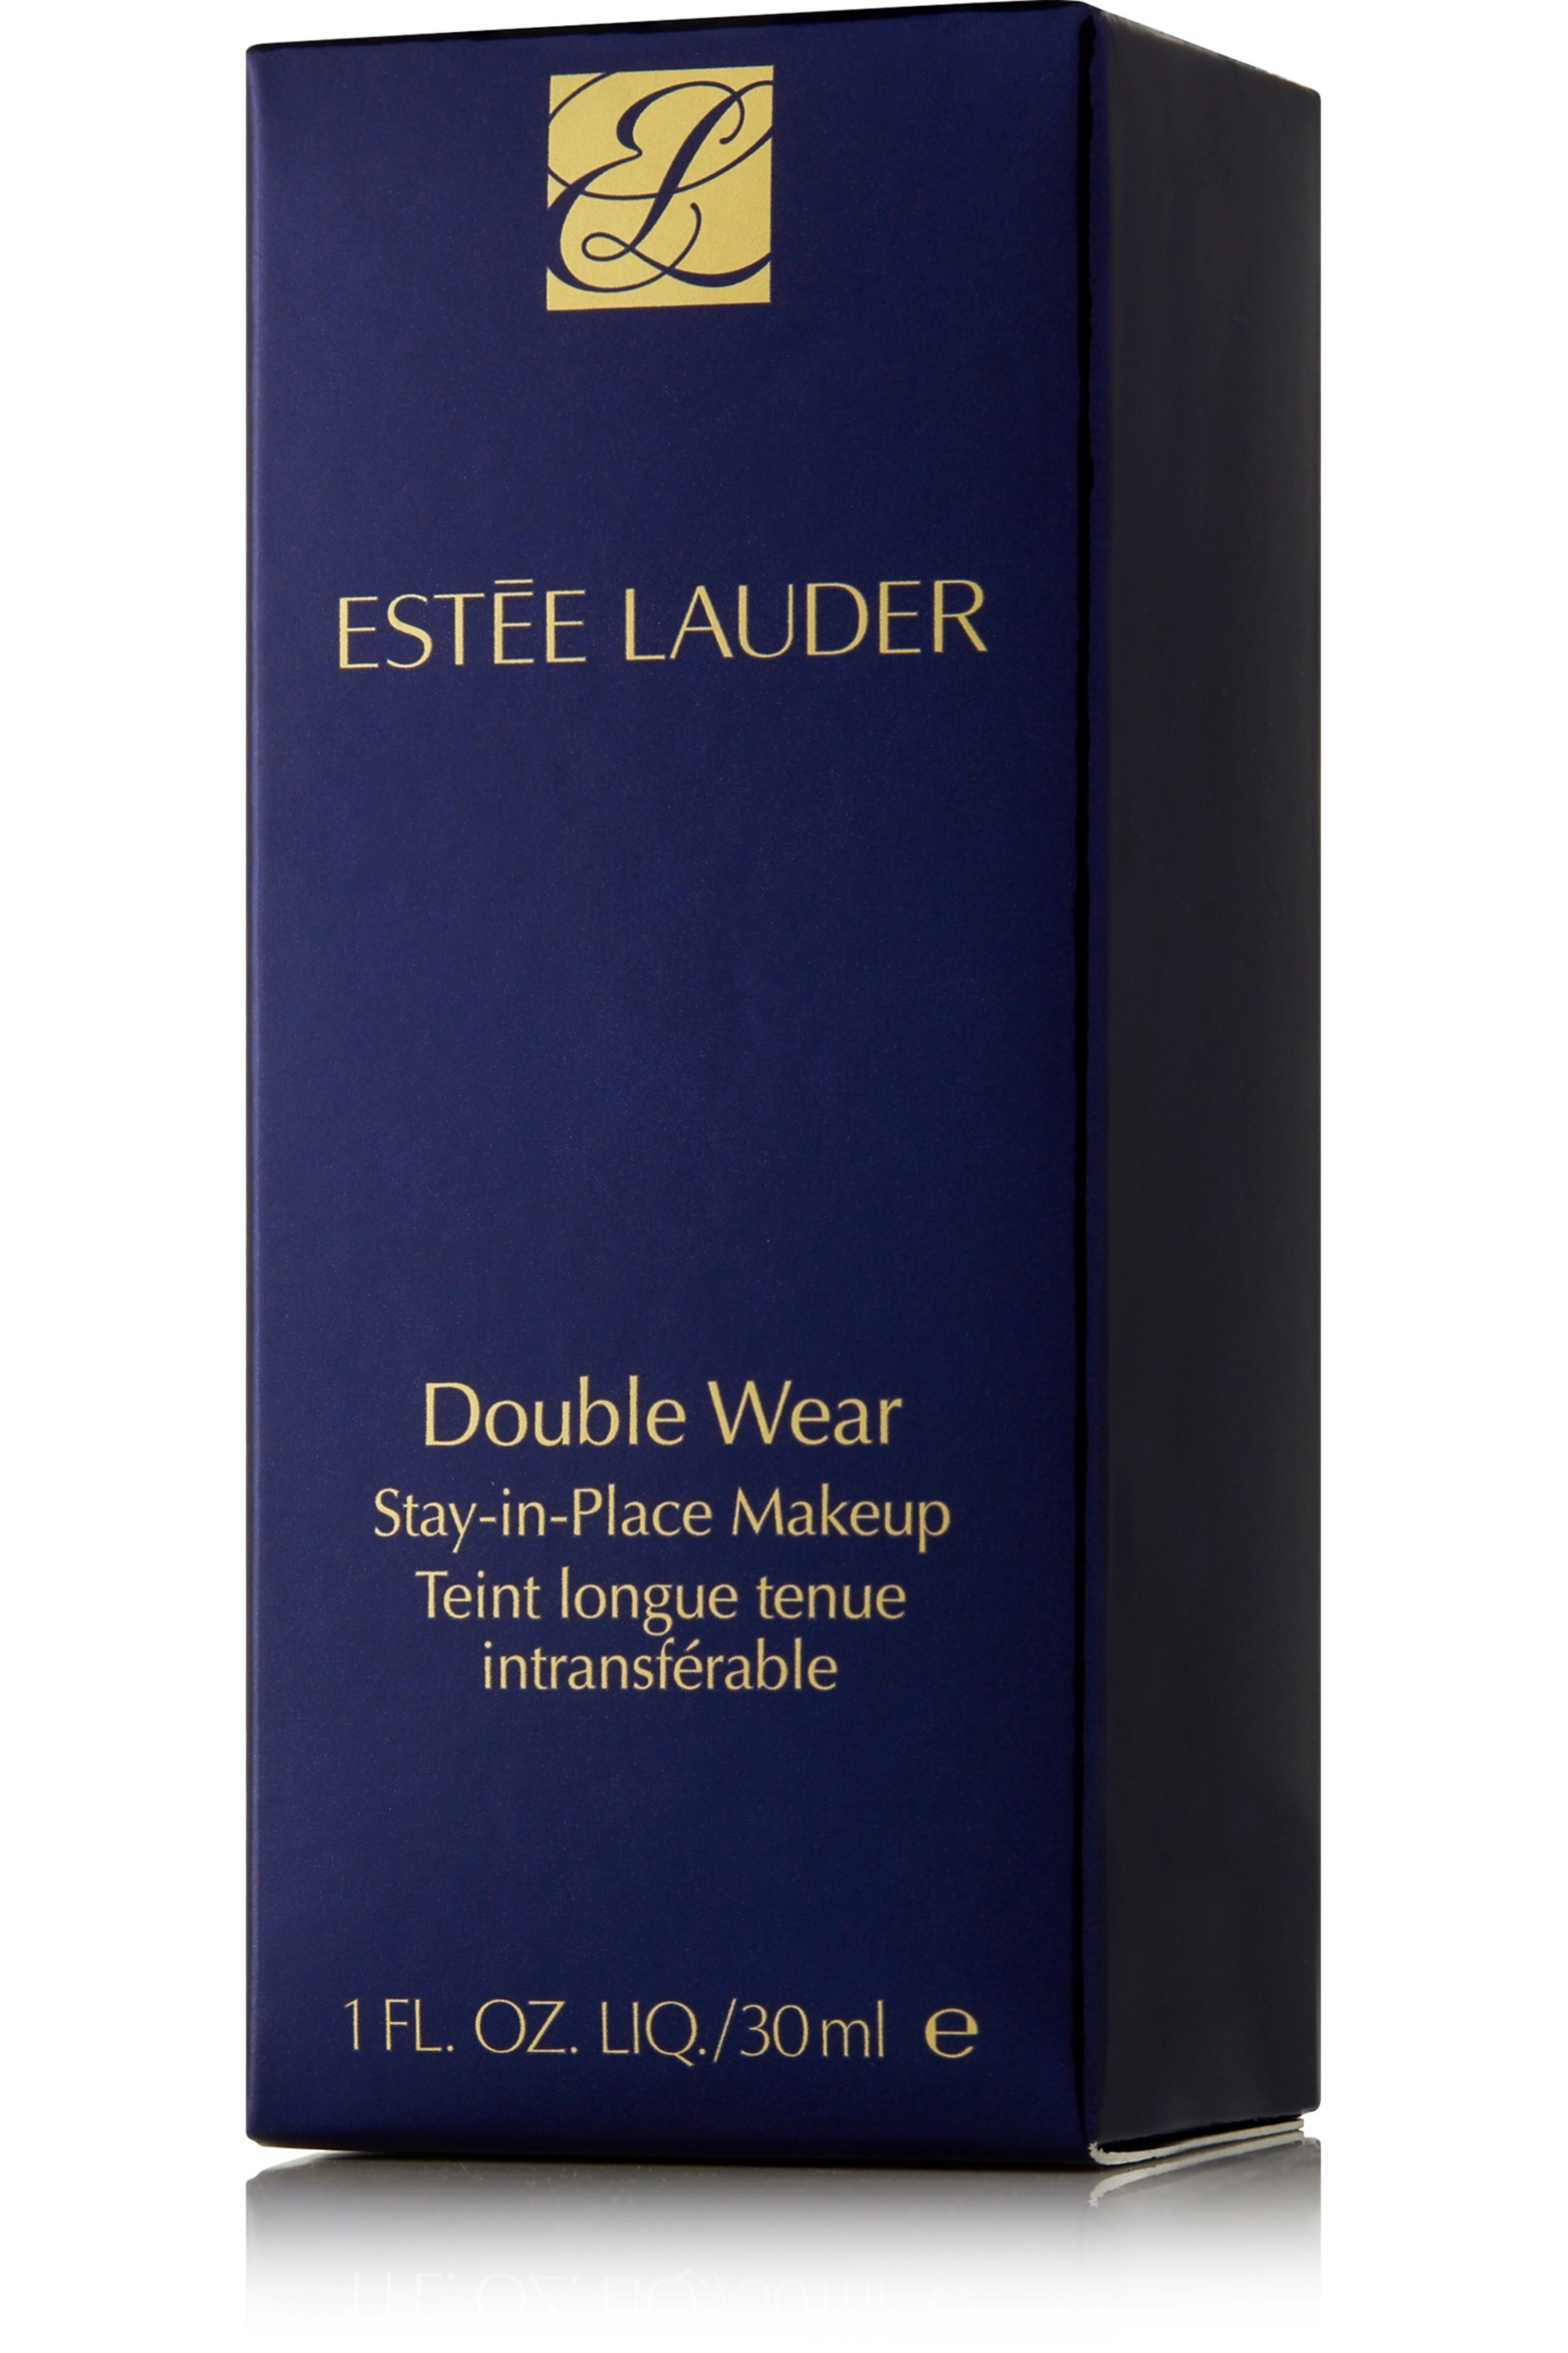 Estée Lauder Double Wear Stay-in-Place Makeup – Rich Cocoa 6C1 – Foundation